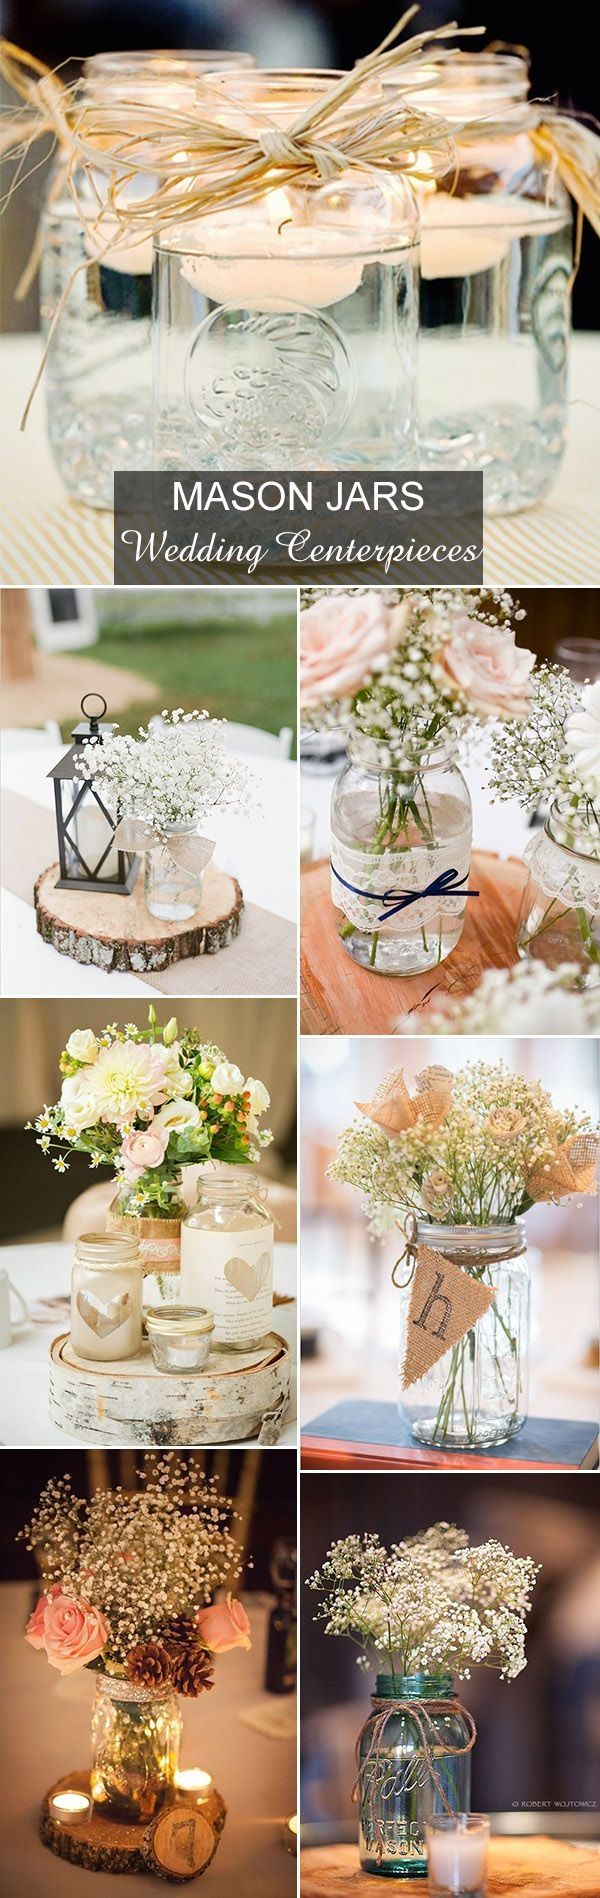 Wedding decoration ideas simple  country rustic mason jars inspired wedding centerpieces ideas by